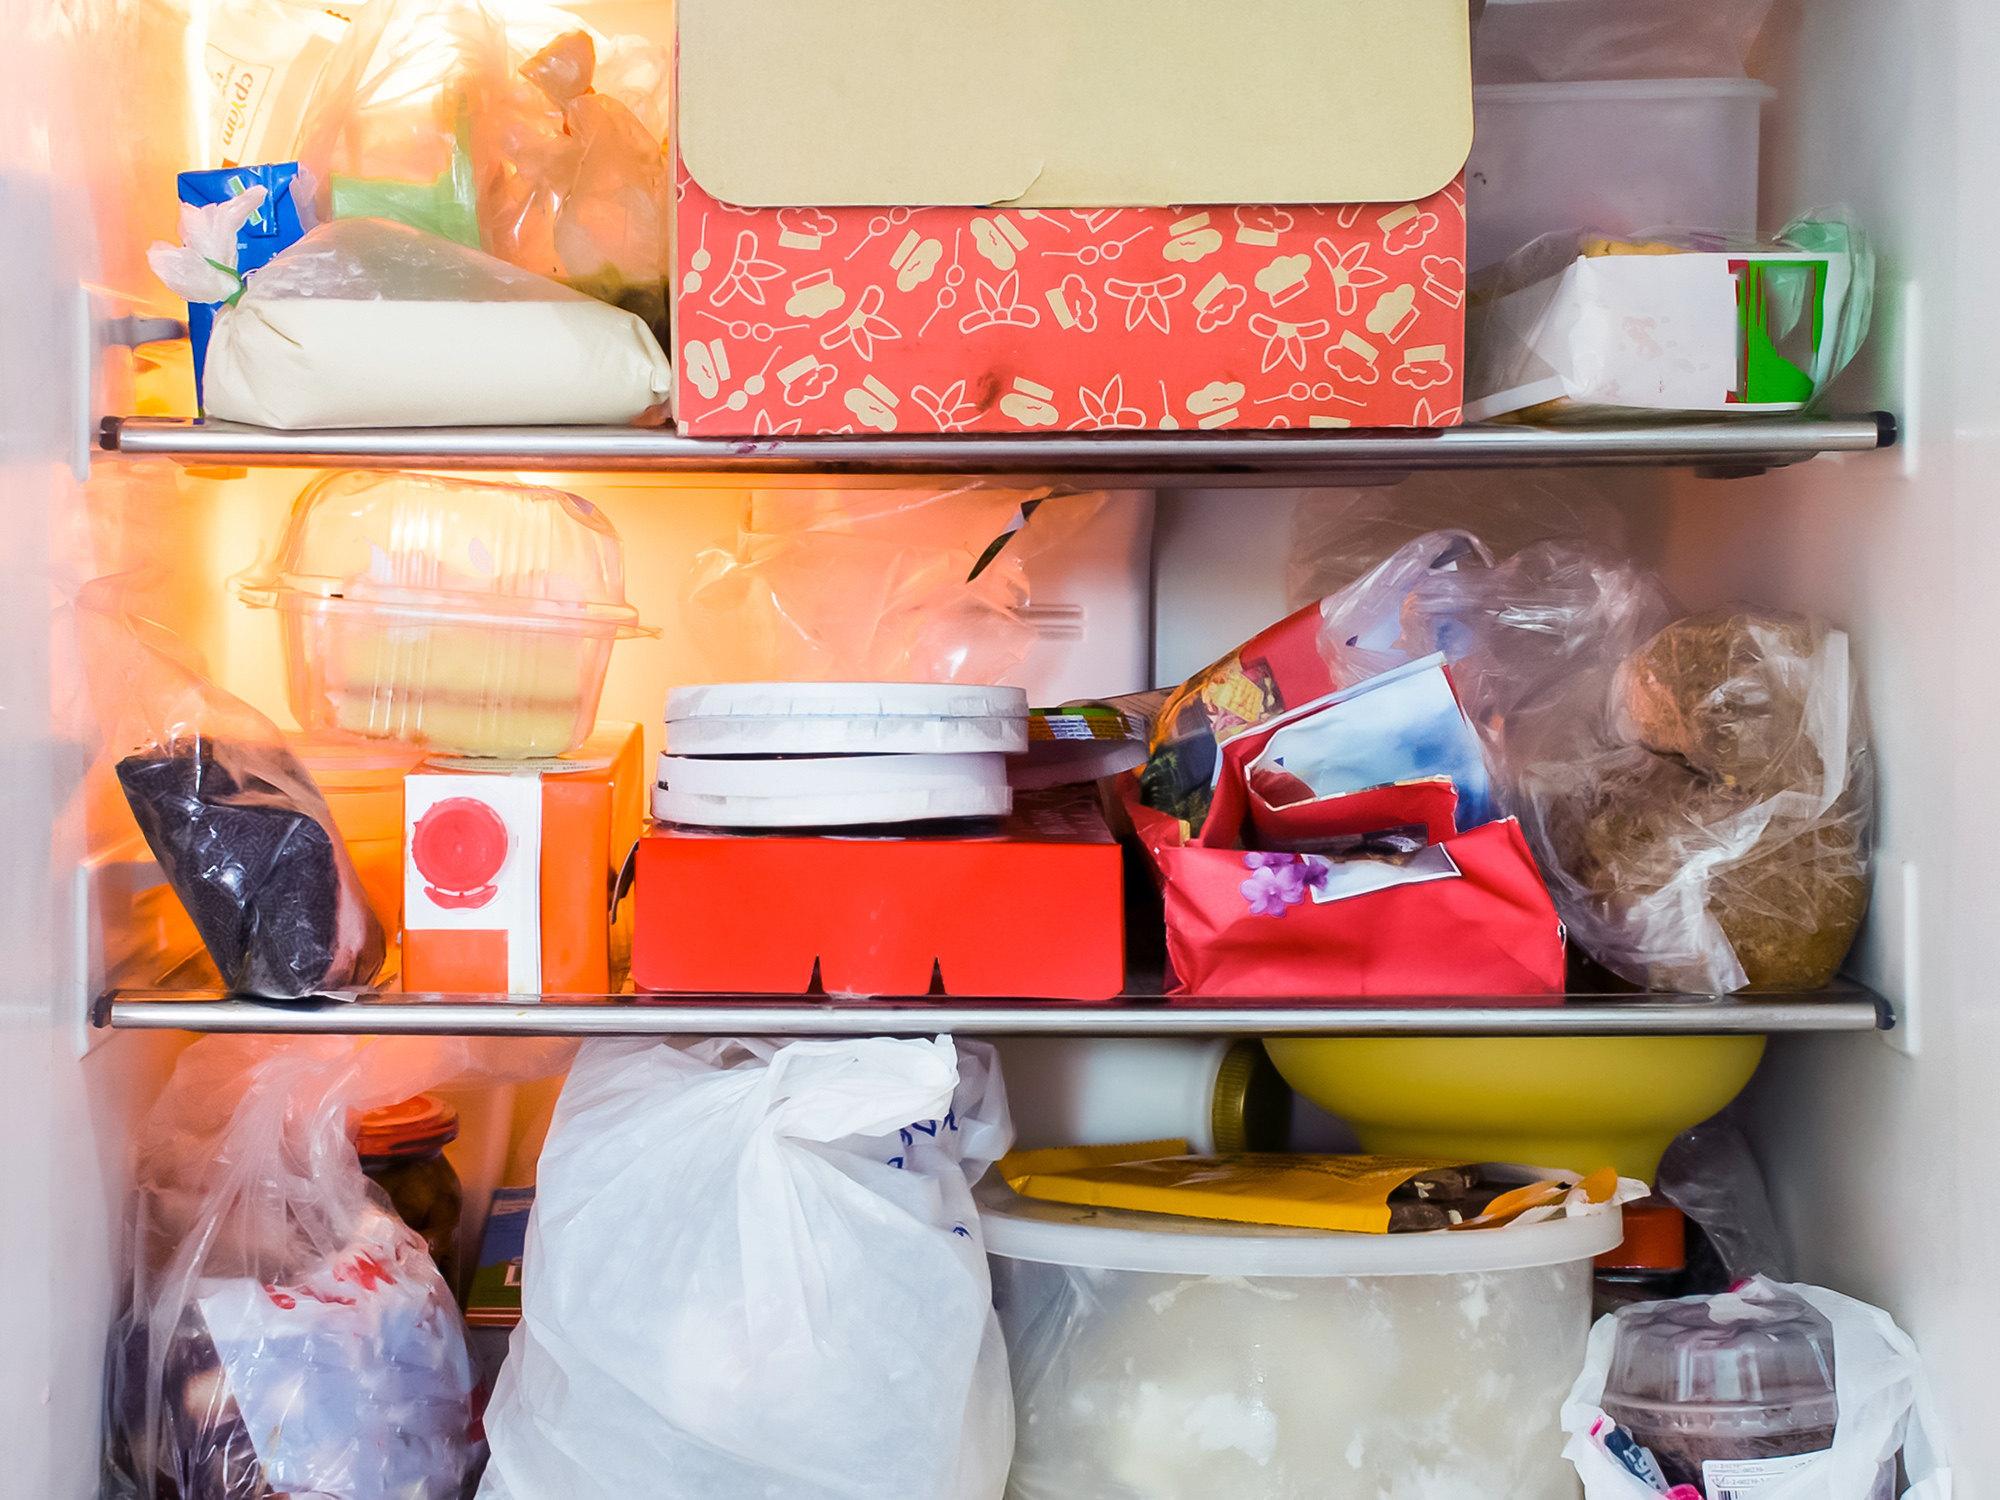 12 Storage Mistakes That Are Spoiling Your Leftovers—And How to Fix Them